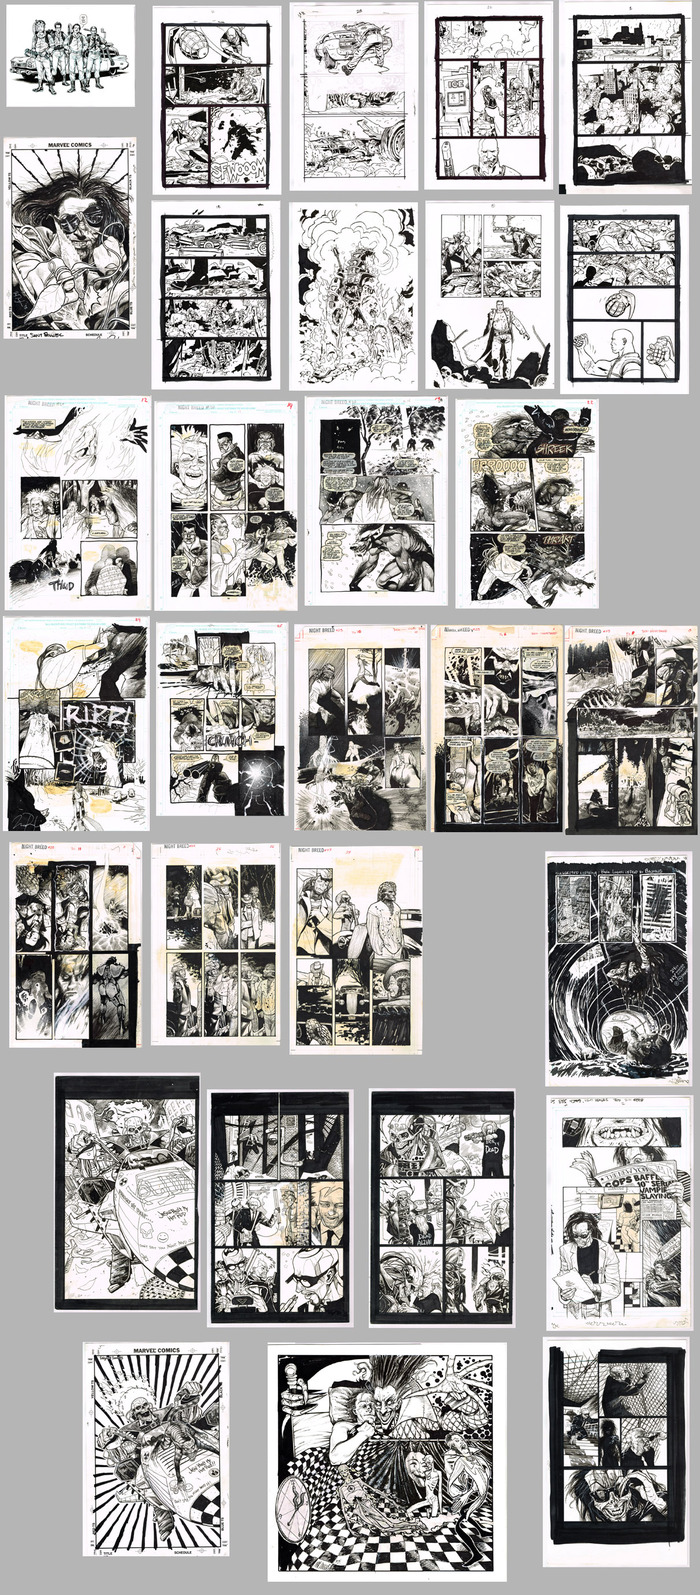 Thumbs of 30 pages from Marvel, IDW, and Terminator with Goran Parlov!